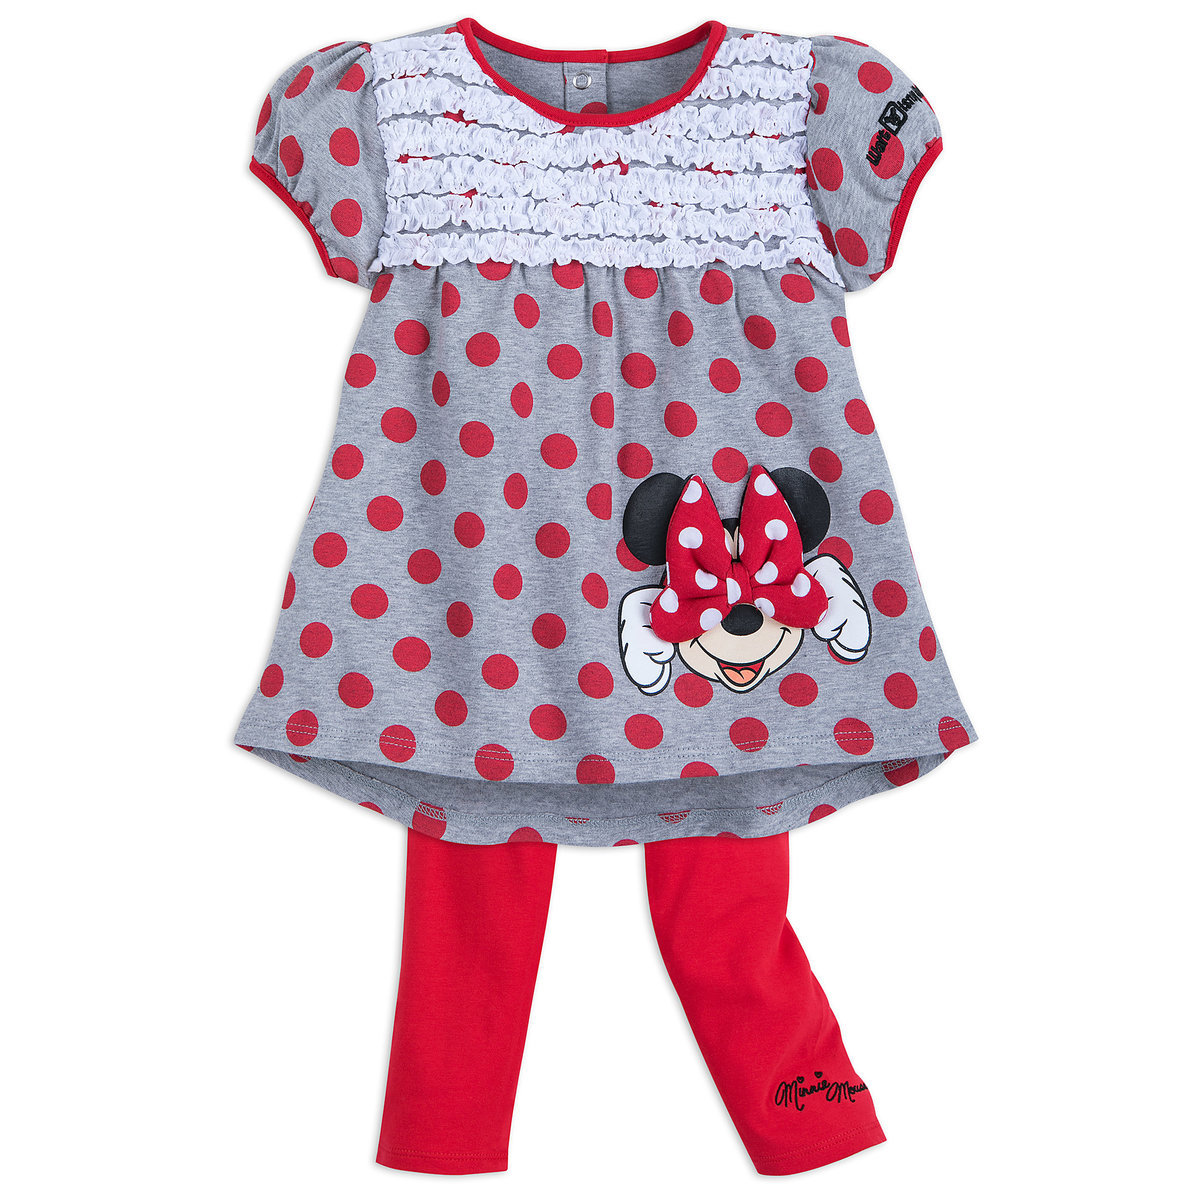 4e2bbdbe5 Product Image of Minnie Mouse Red Dot Top and Leggings Set for Girls - Walt  Disney